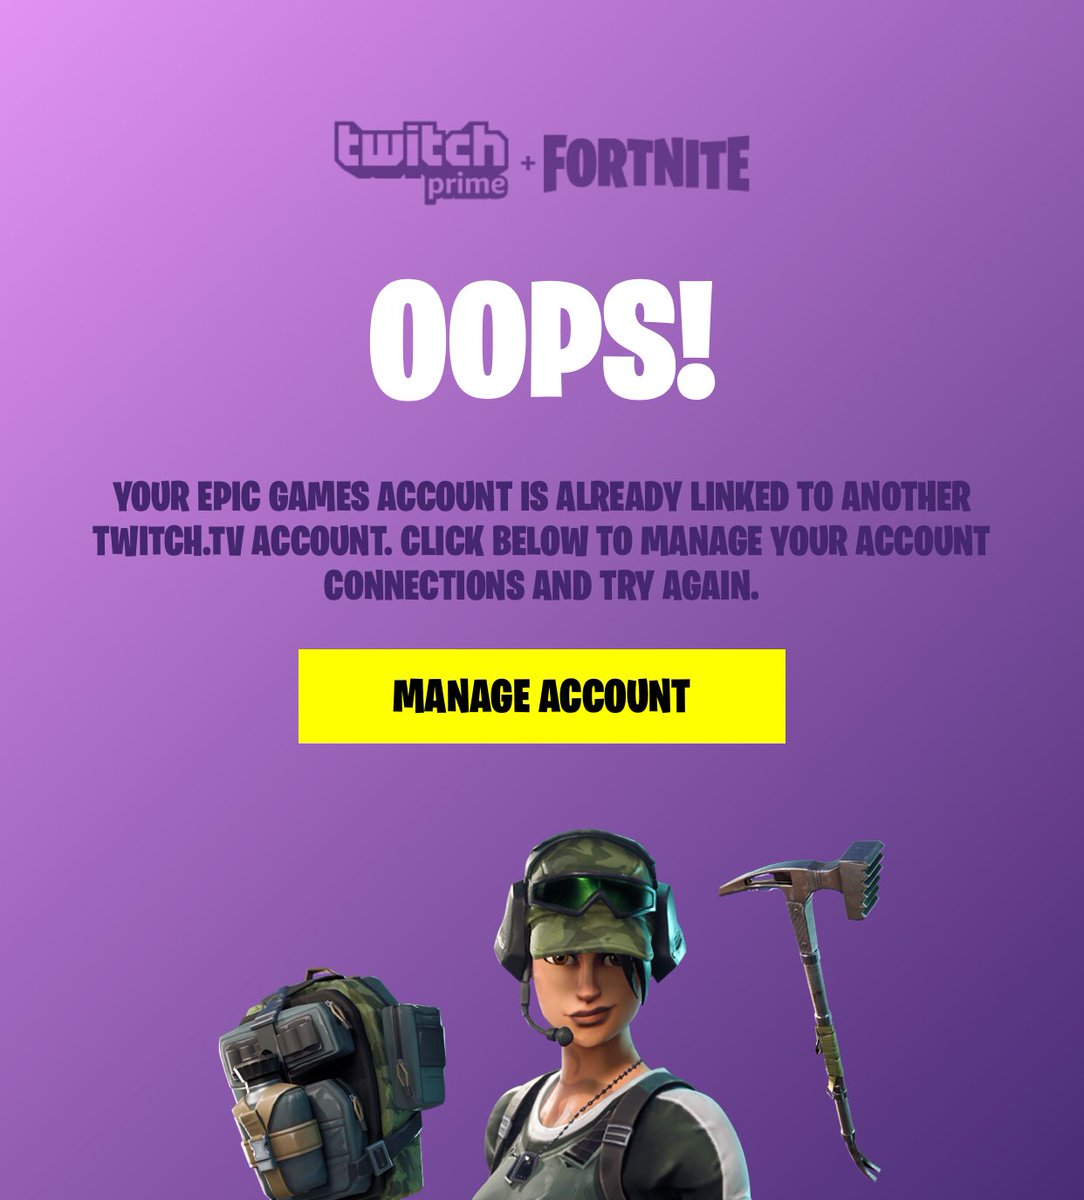 How To Check What Epic Games Account Is Linked